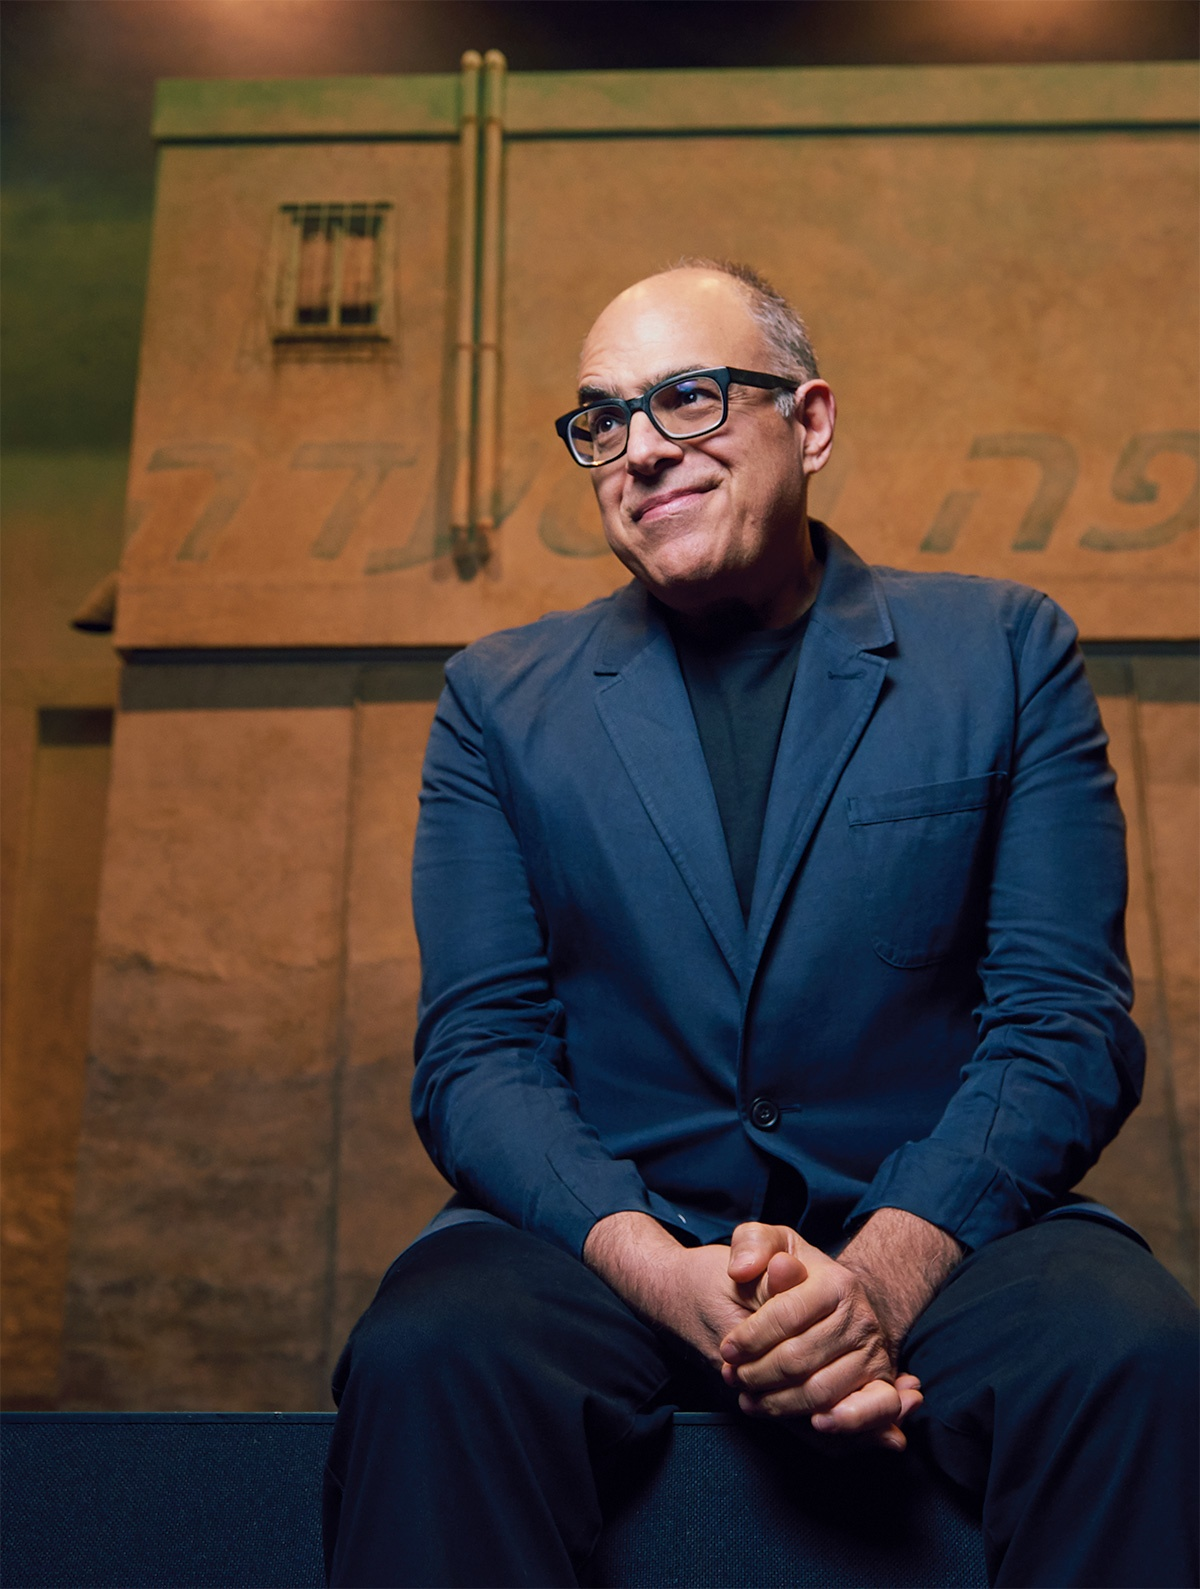 Photograph of David Yazbek in a blue suit.